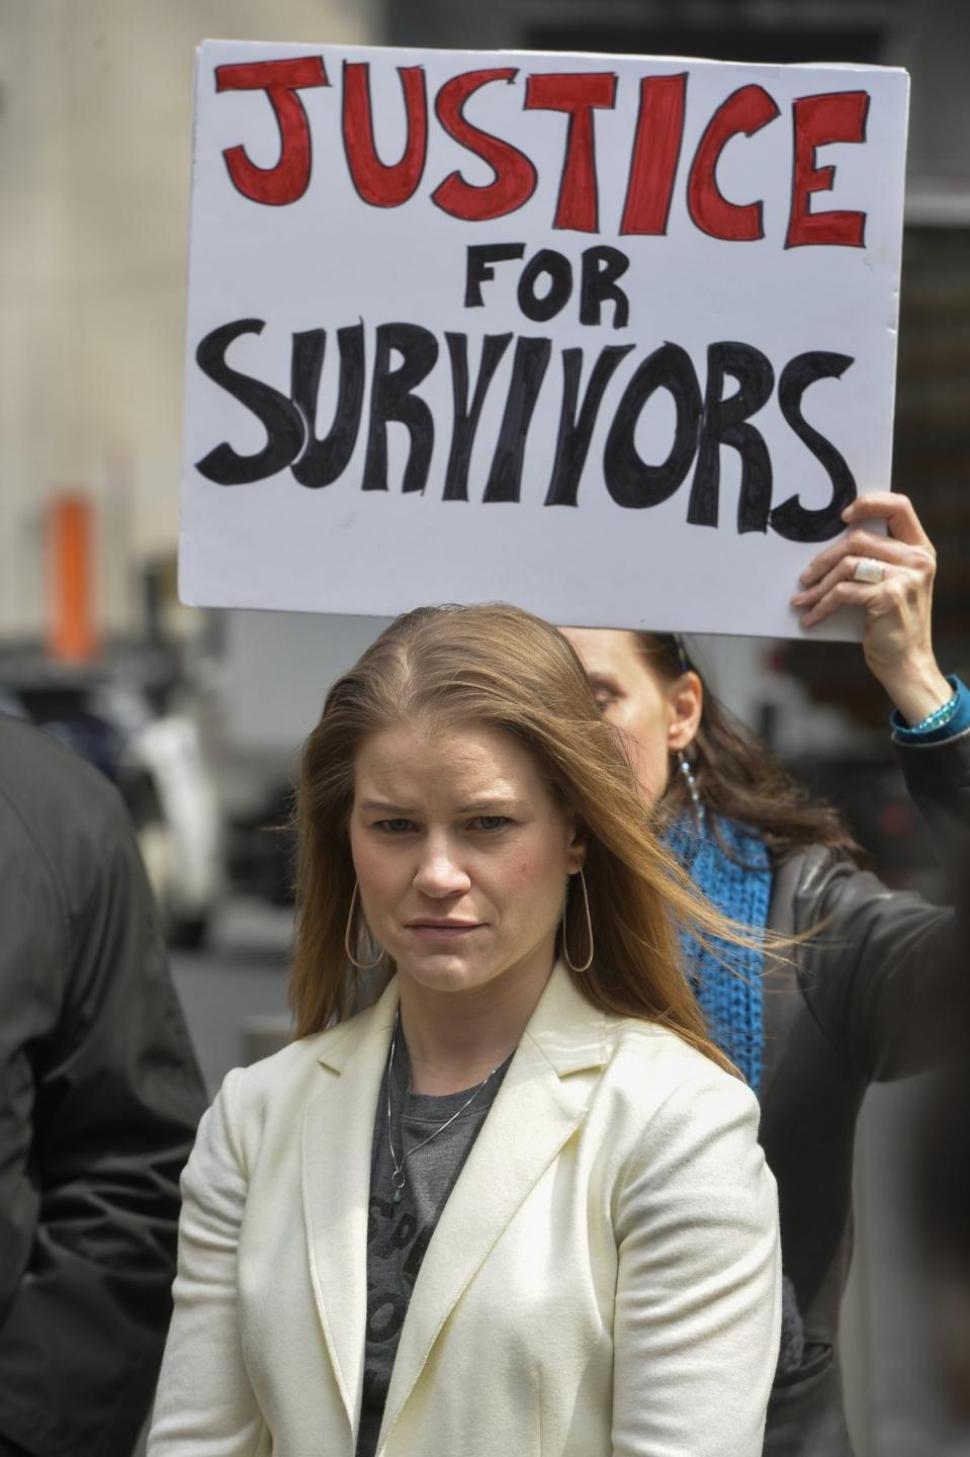 survivor sign in background